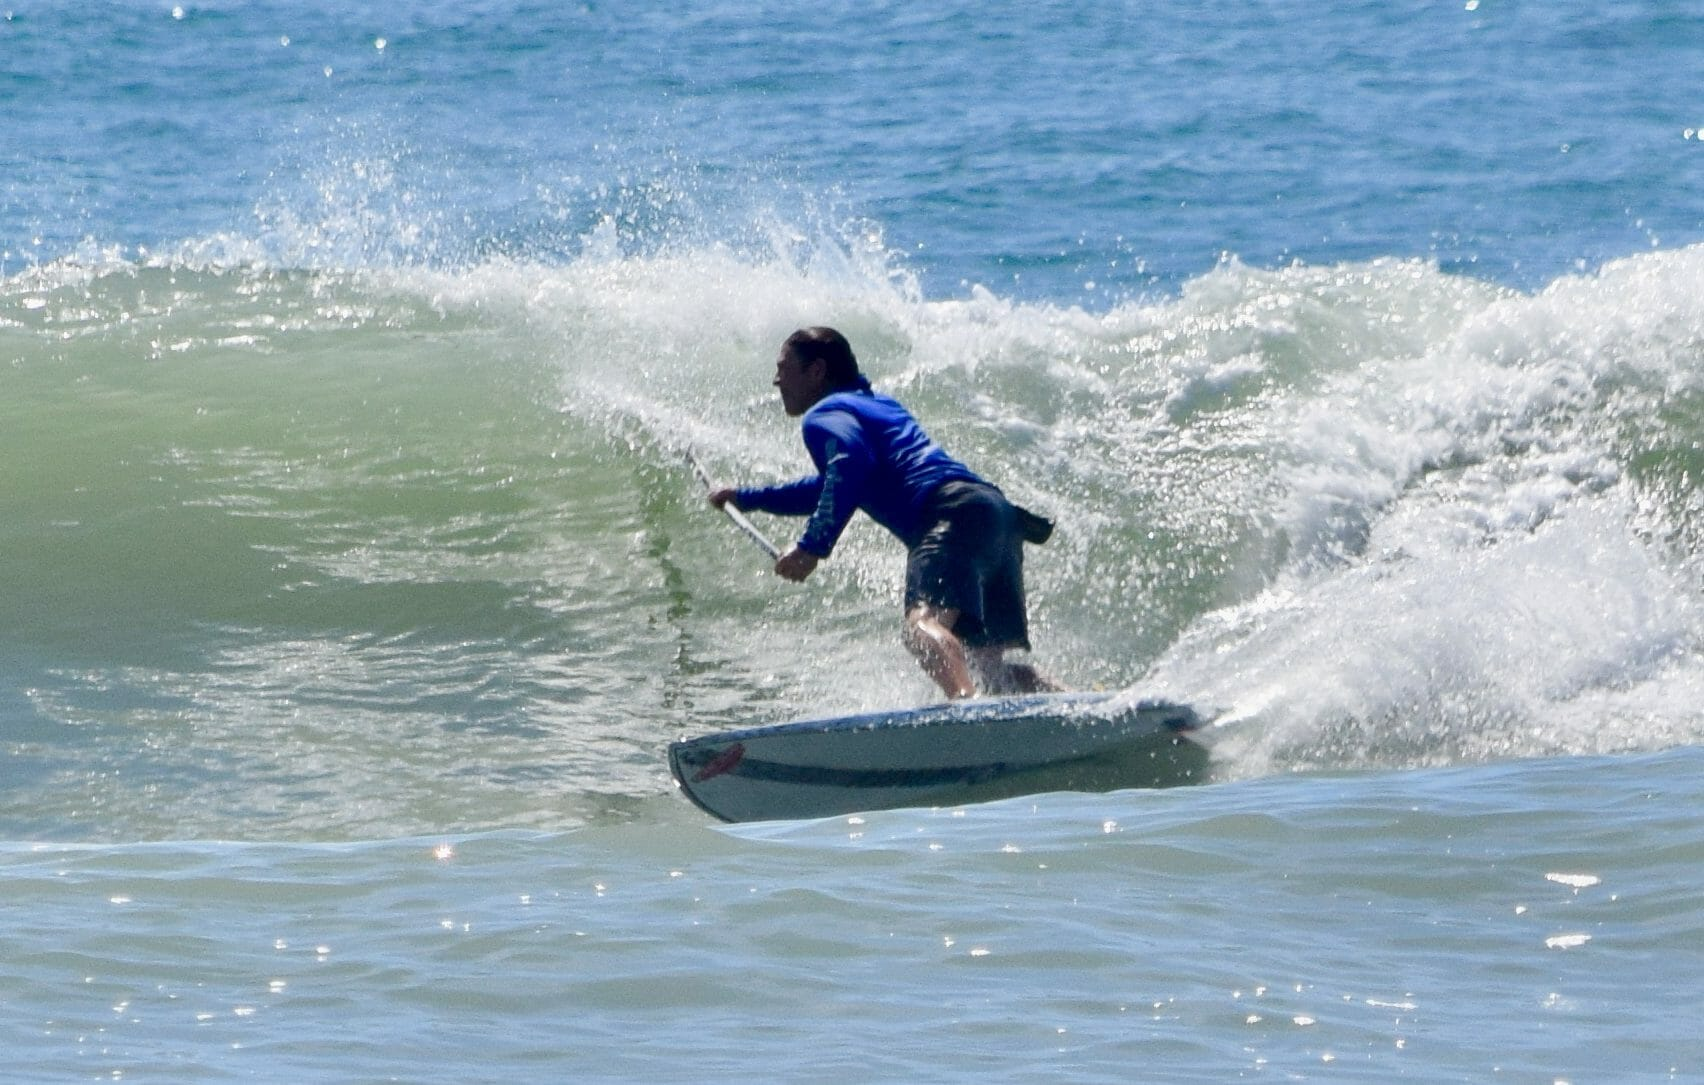 Girard Middleton on Infinity SUP B-line SoBe Surf & Paddle